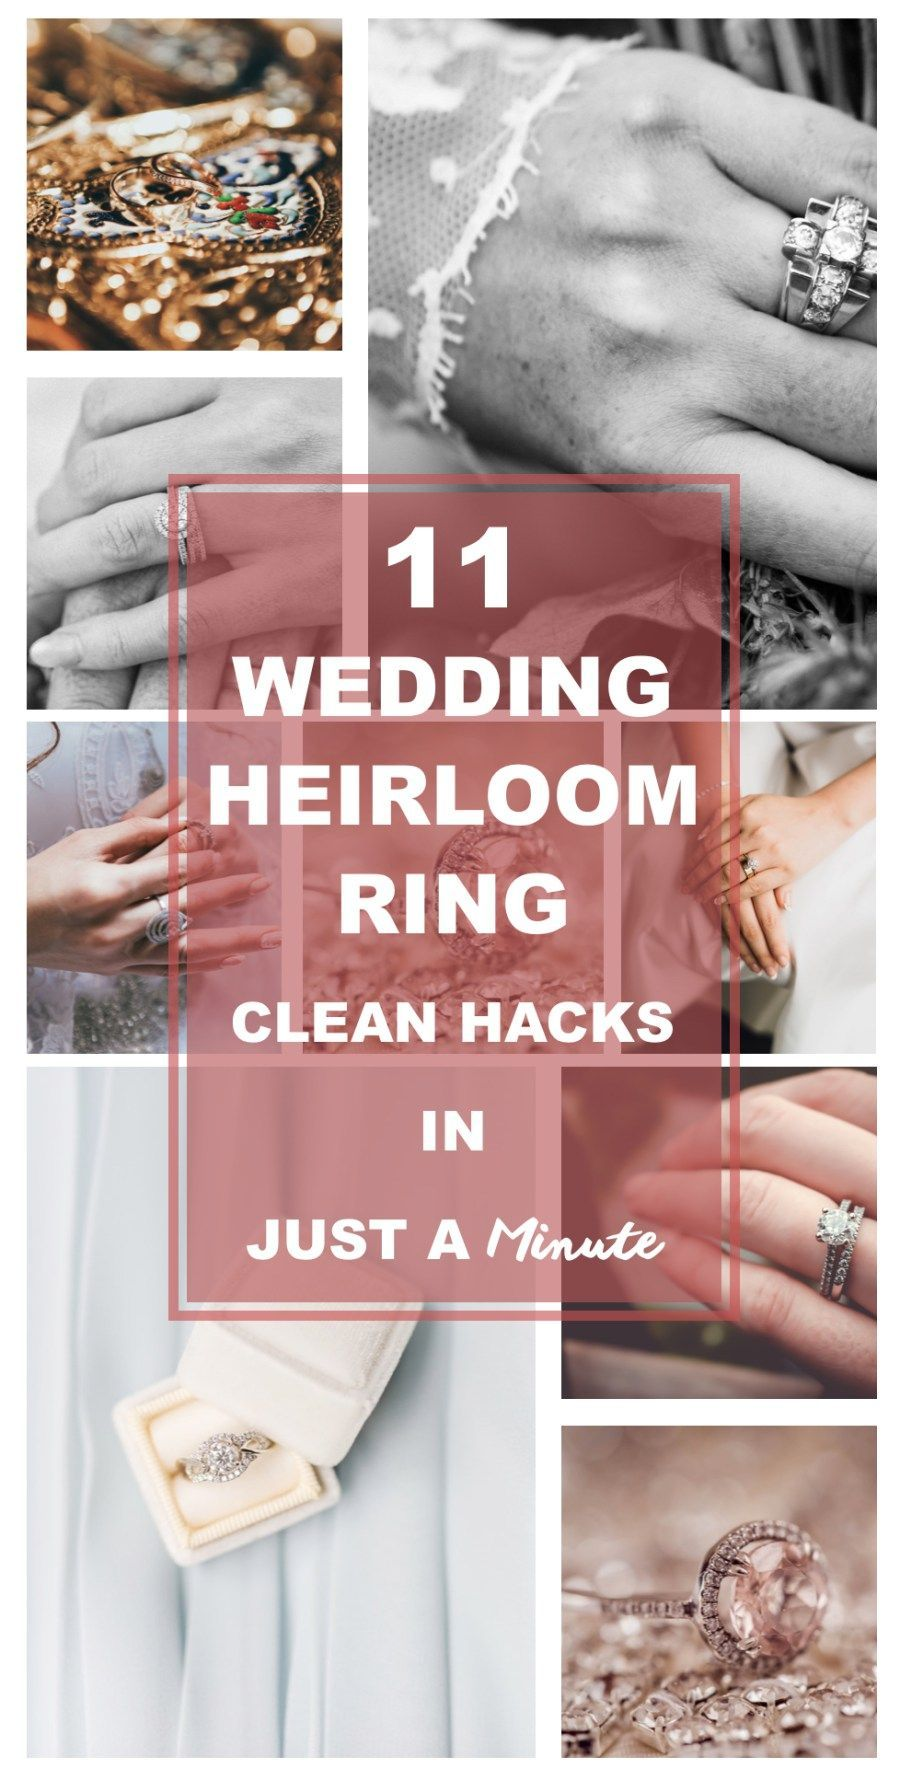 11 Wedding Heirloom Ring Clean Hacks In Just A Minute (depends on ...